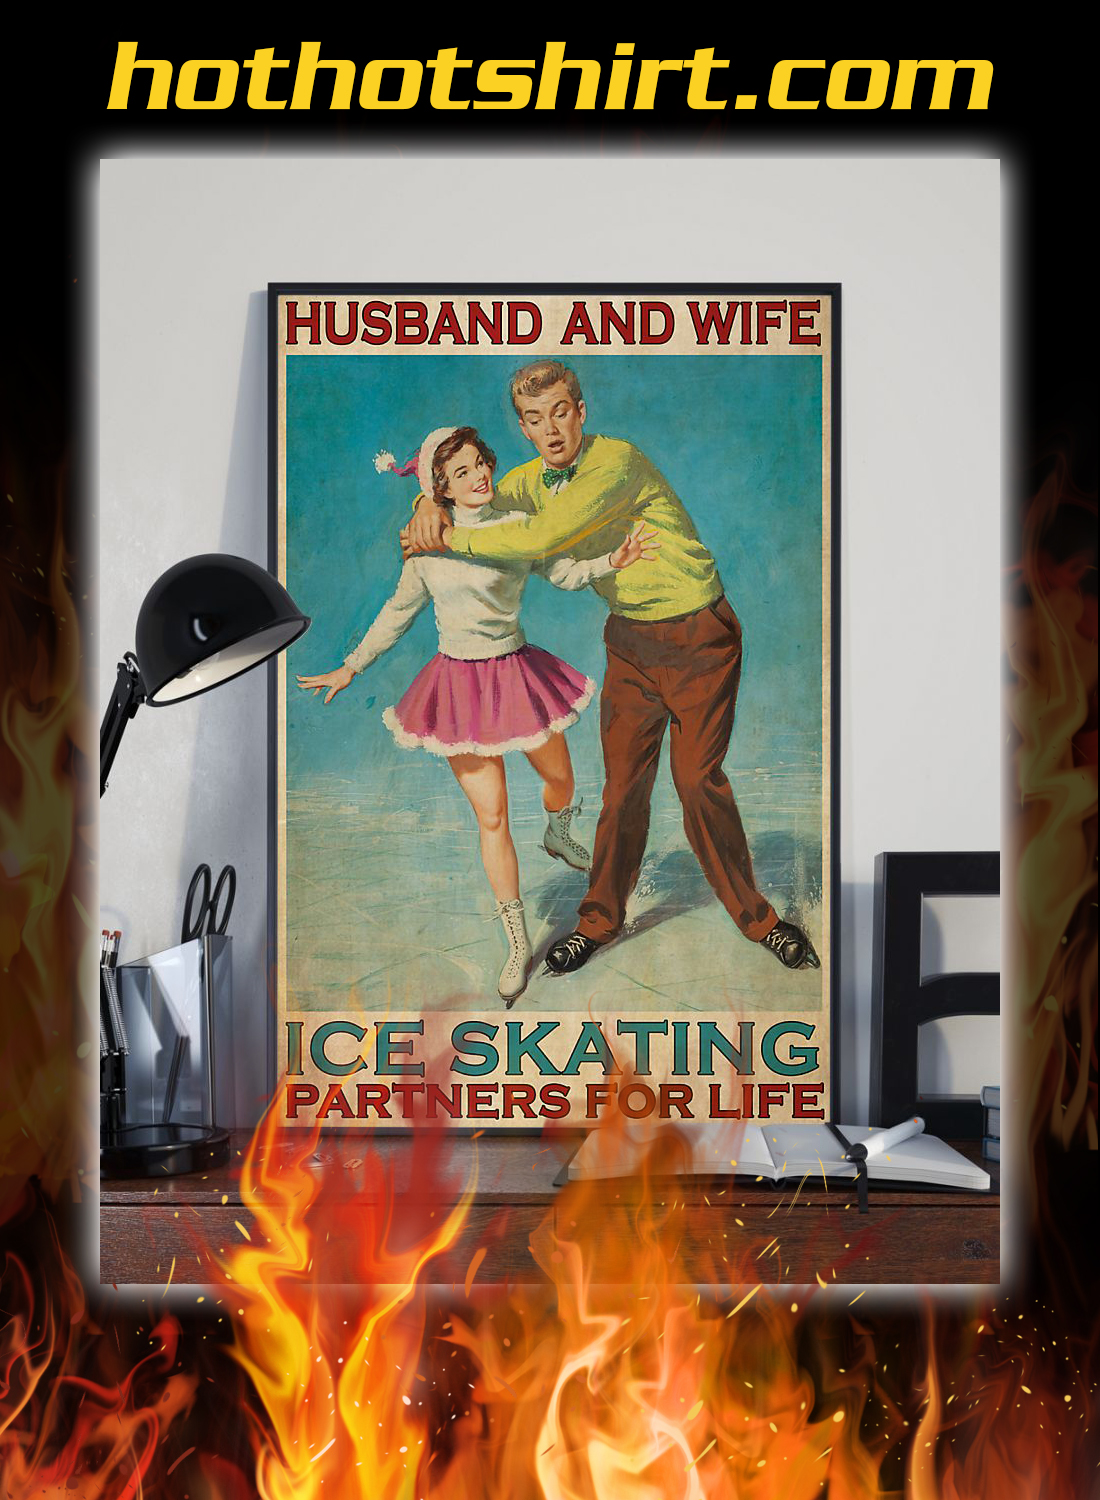 Husband and wife ice skating partners for life poster 1